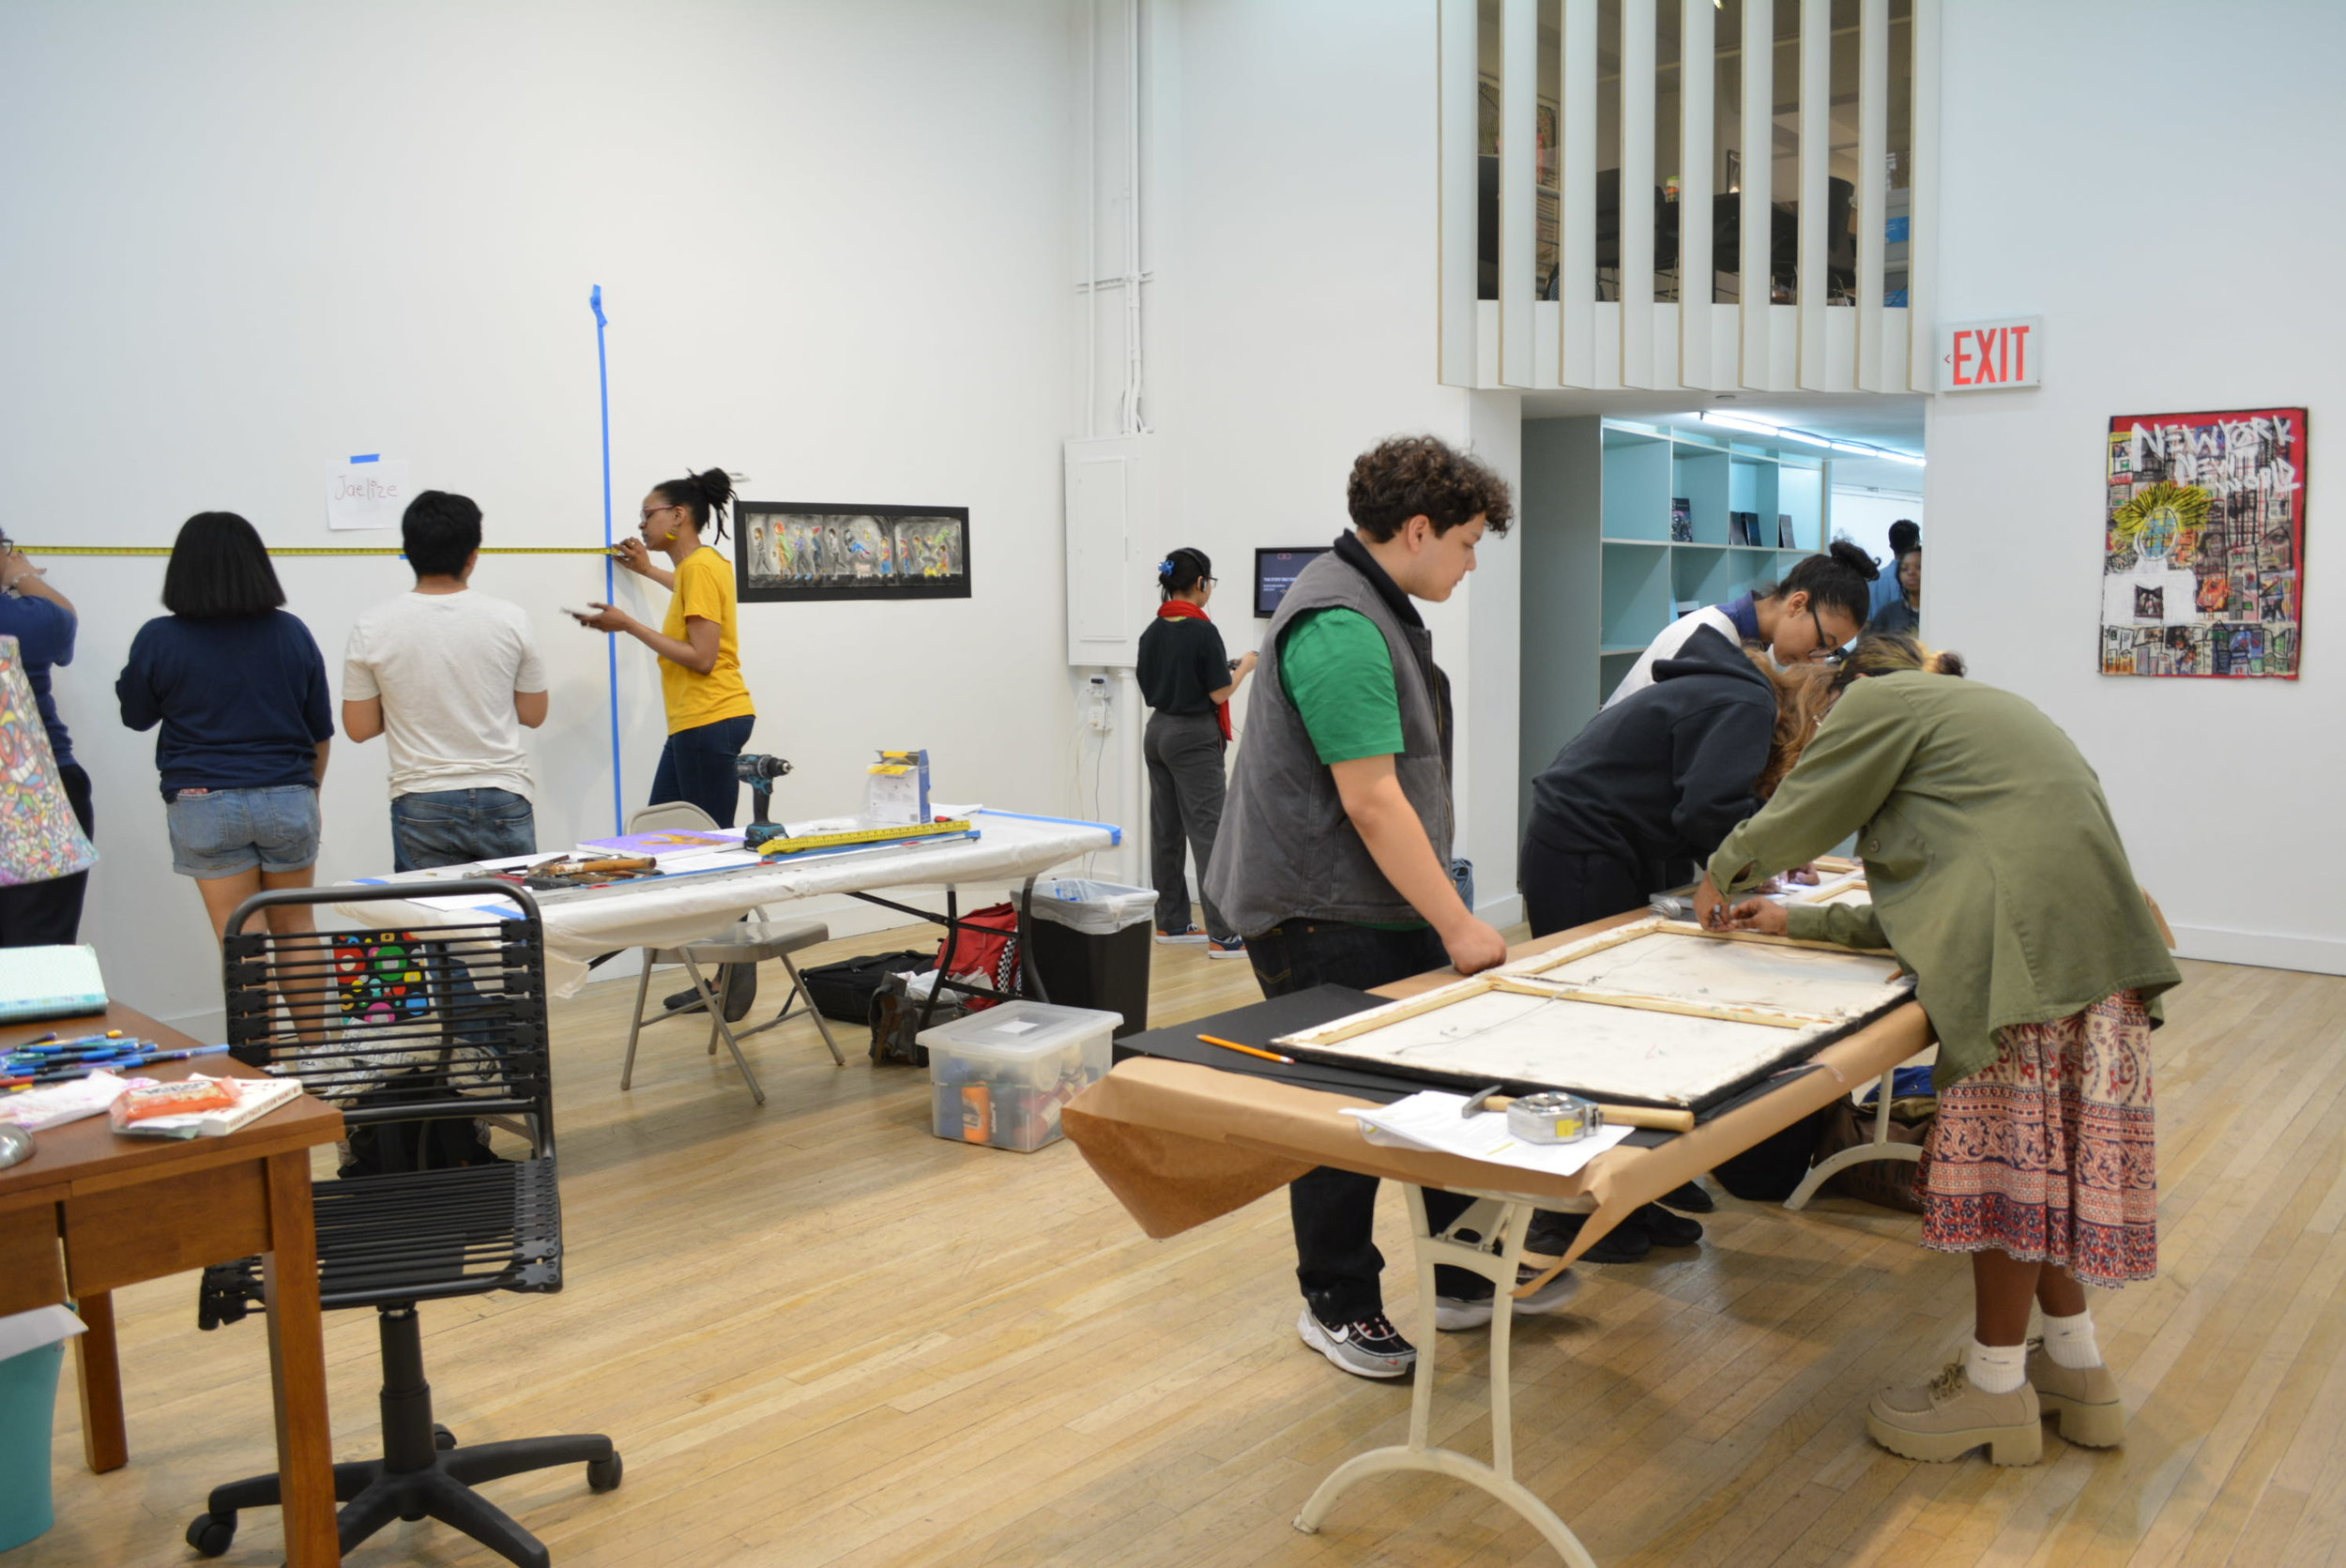 Lead Educator Amanda Adams-Louis works with the CUE teens to install their final exhibition,  The Peristence of Memory.